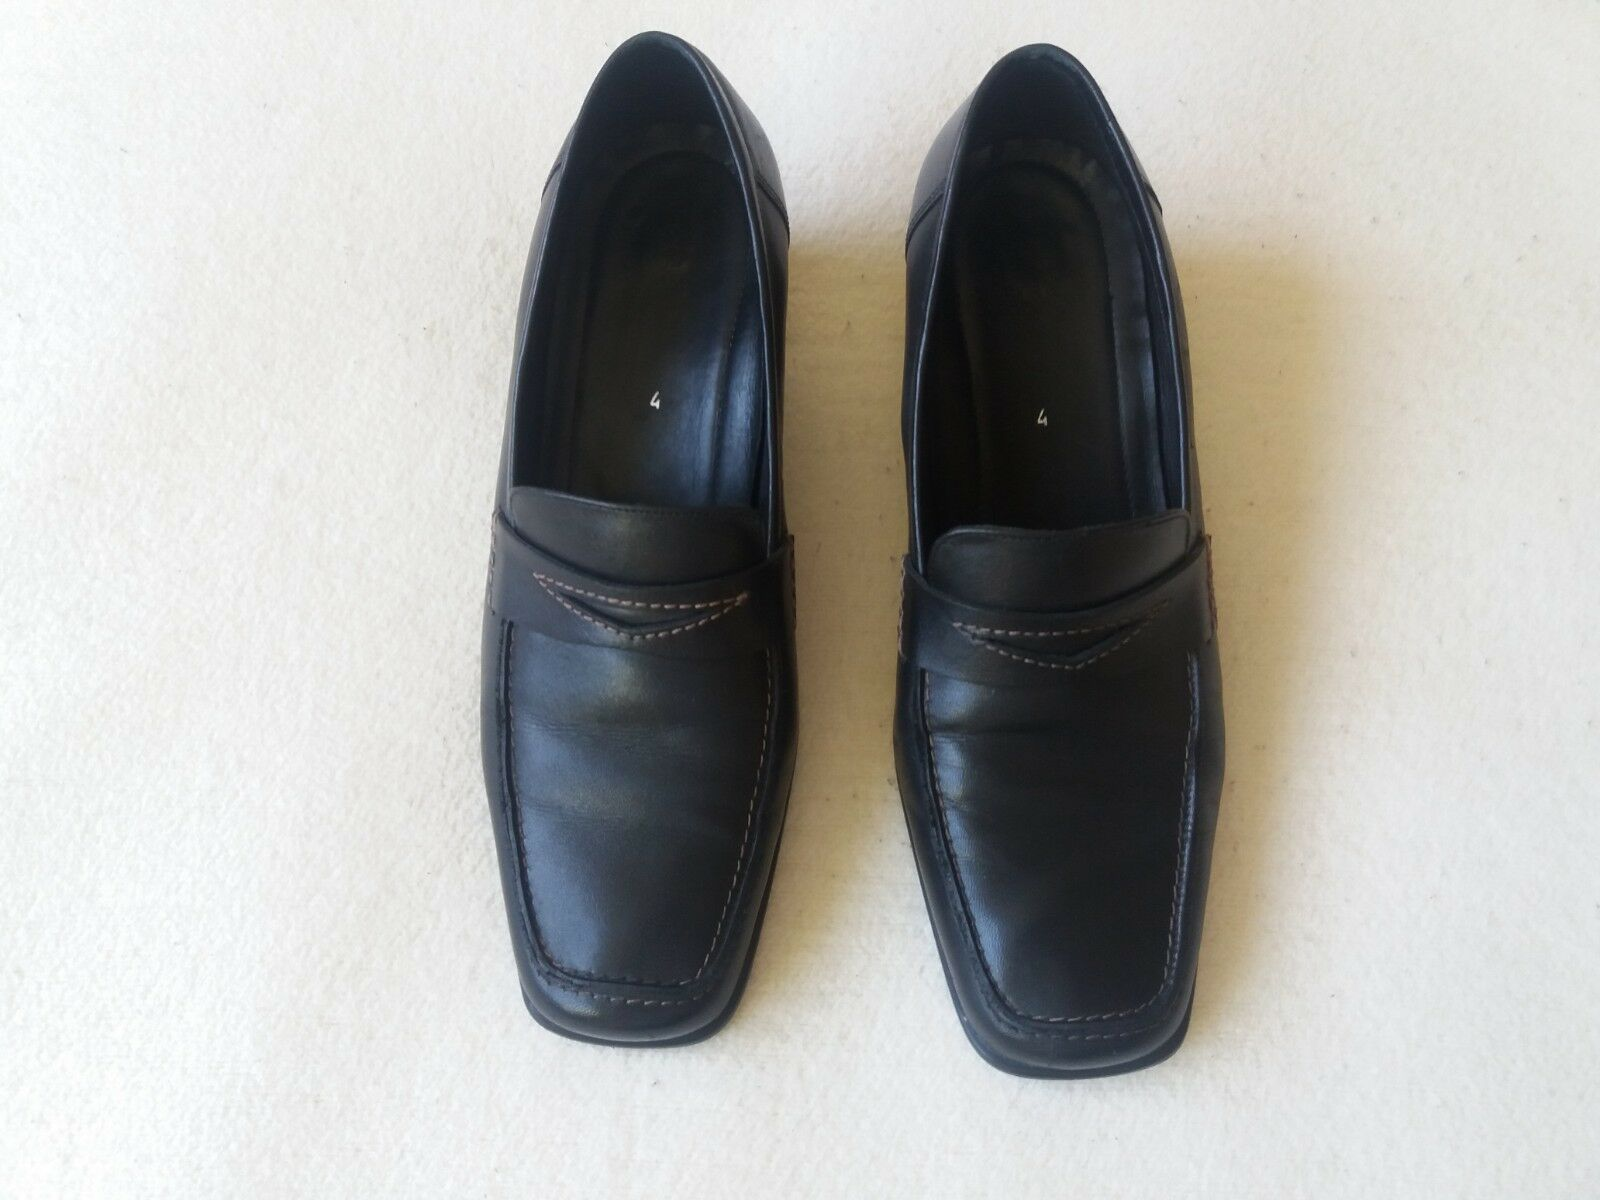 Women's Ecco Leather Shoes UK Size 4 Good Condition